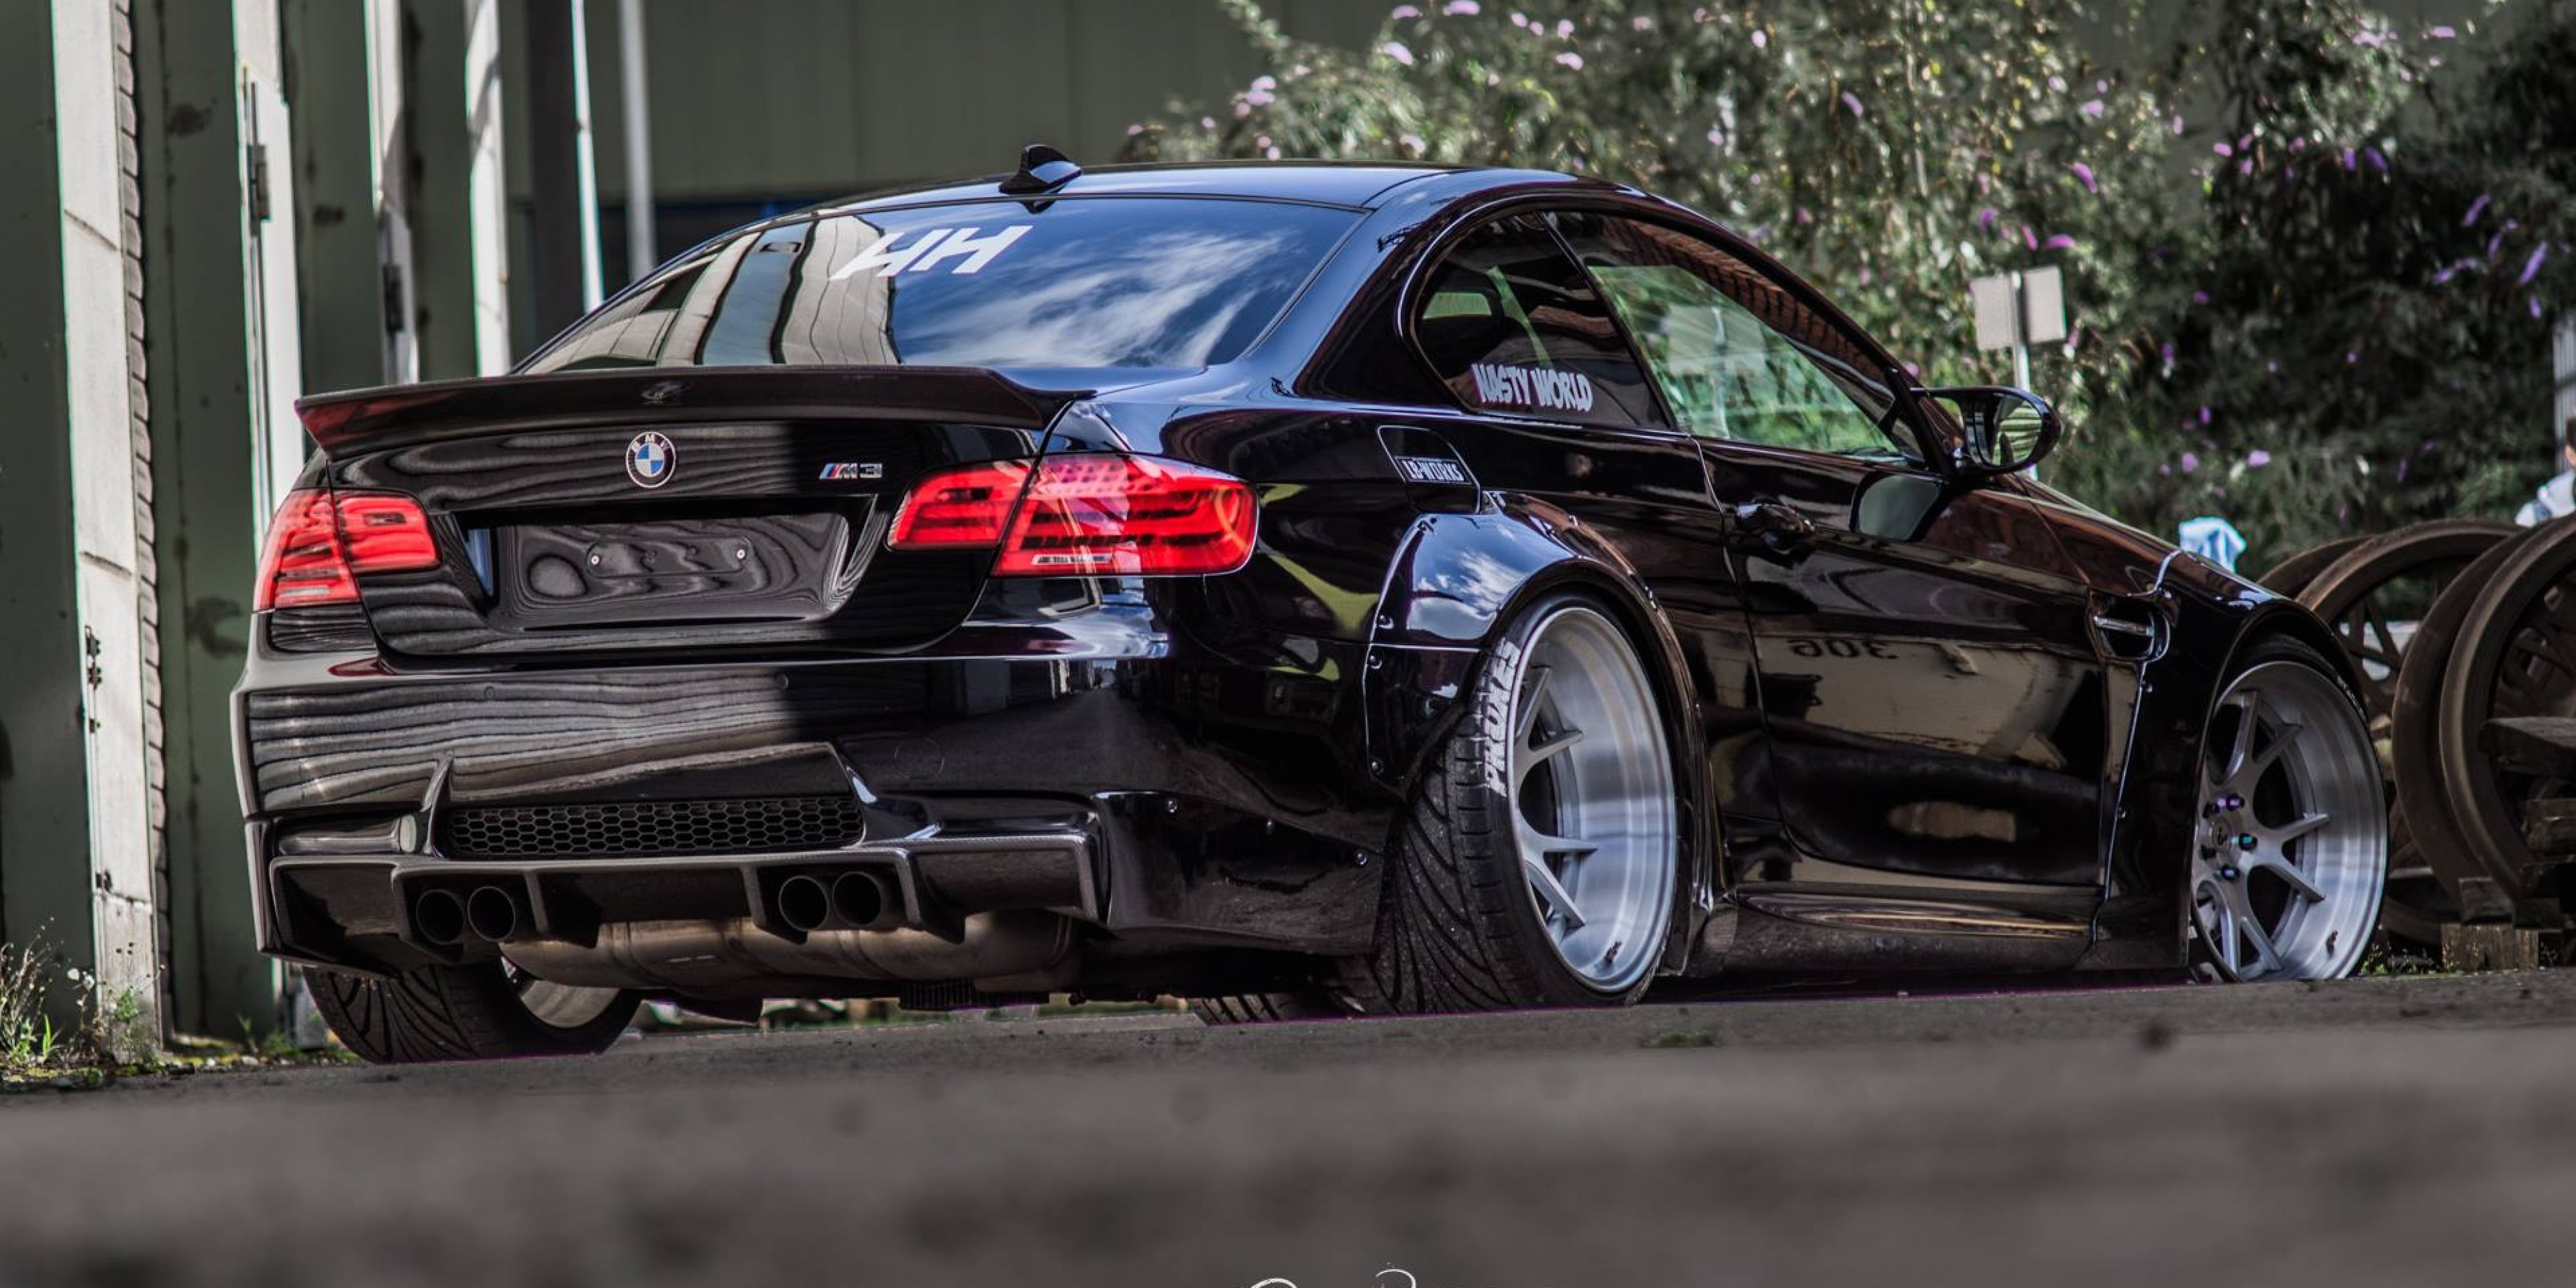 Hd Tune Up Cars Wallpaper Bmw E92 M3 Liberty Walk Nasty World Damnedwerk